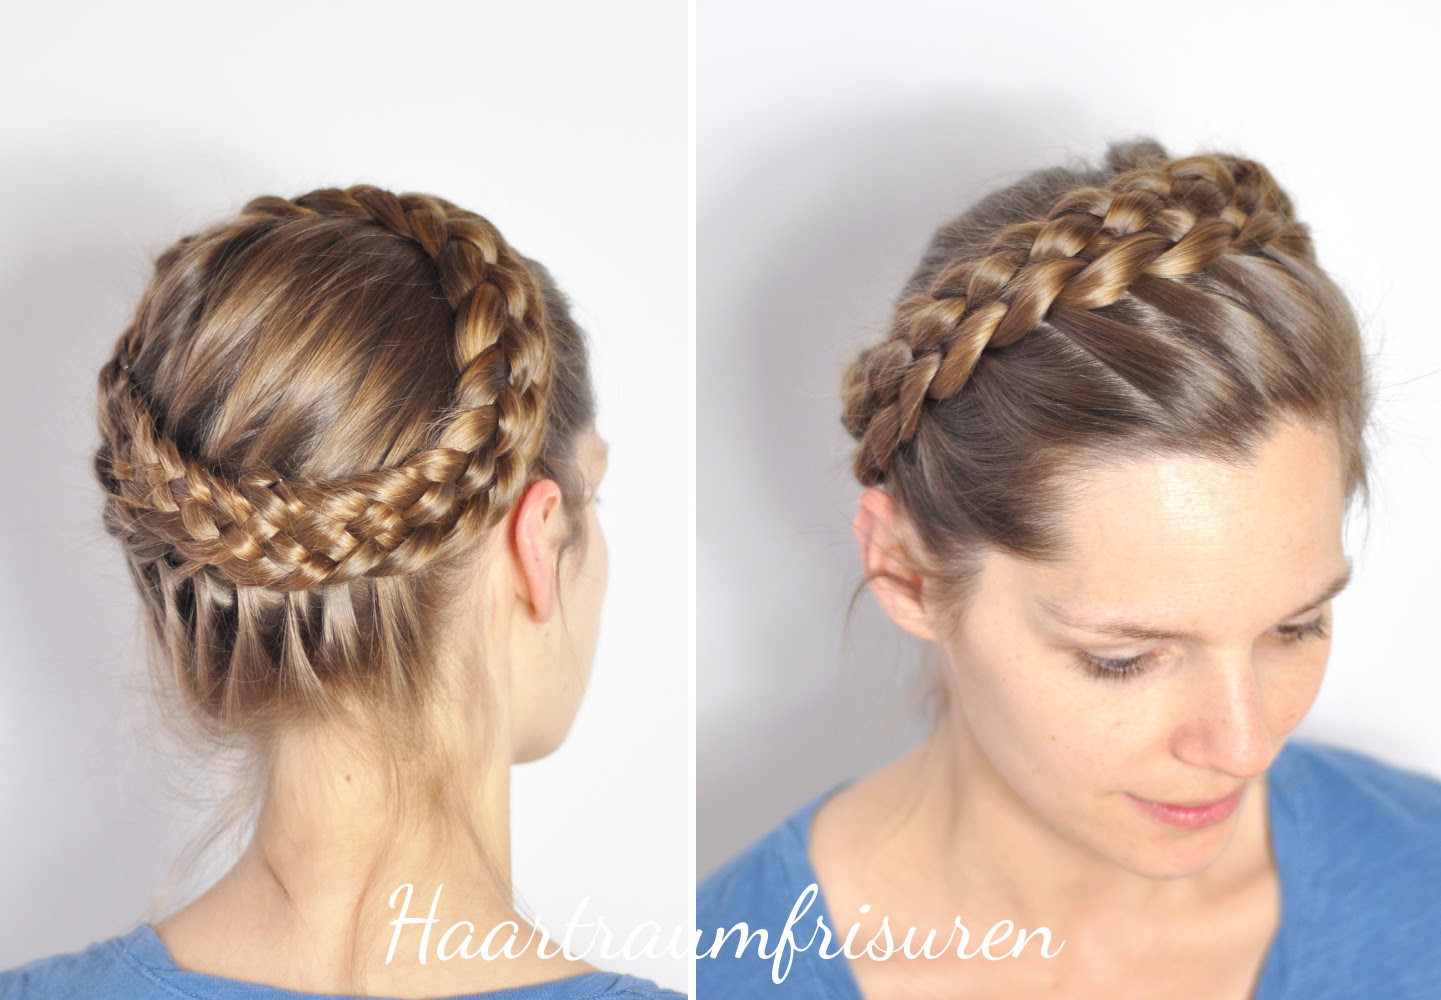 Crown Braids Haartraumfrisuren